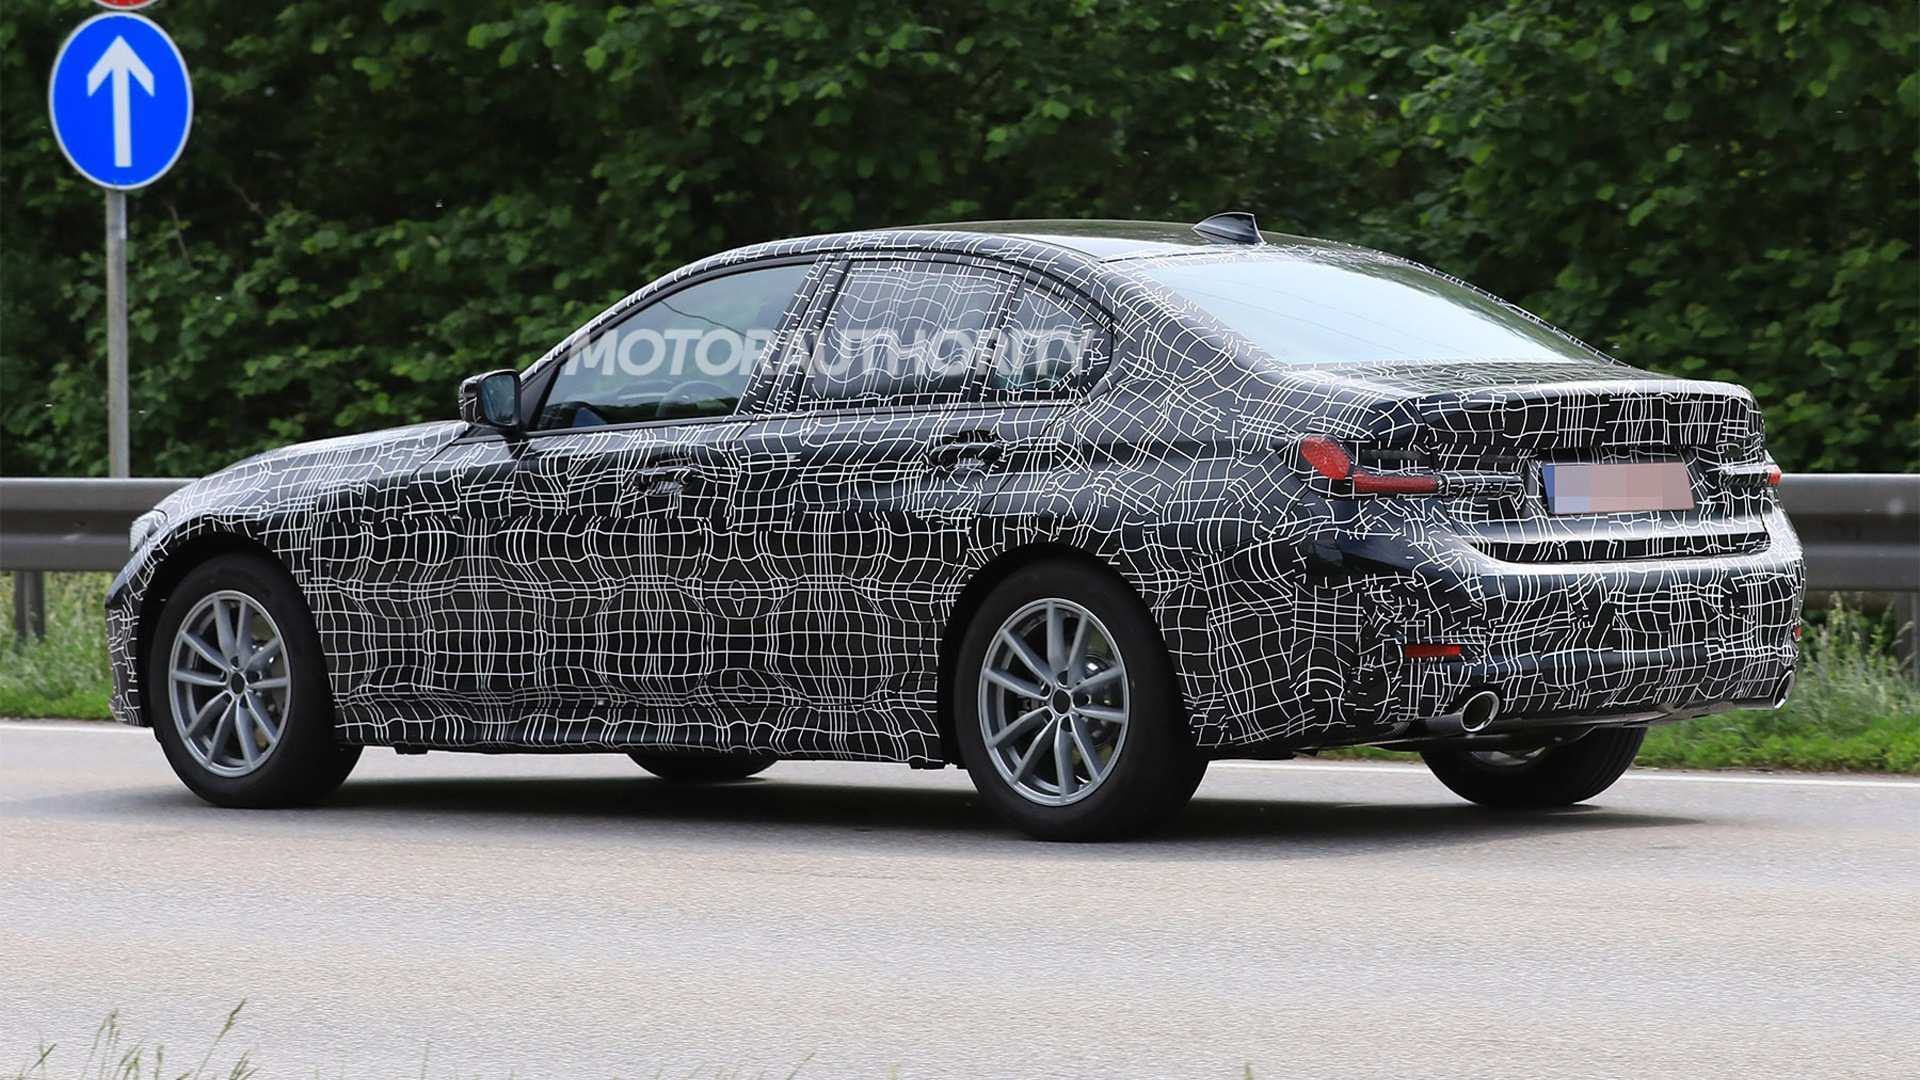 80 New 2020 Spy Shots BMW 3 Series Exterior with 2020 Spy Shots BMW 3 Series